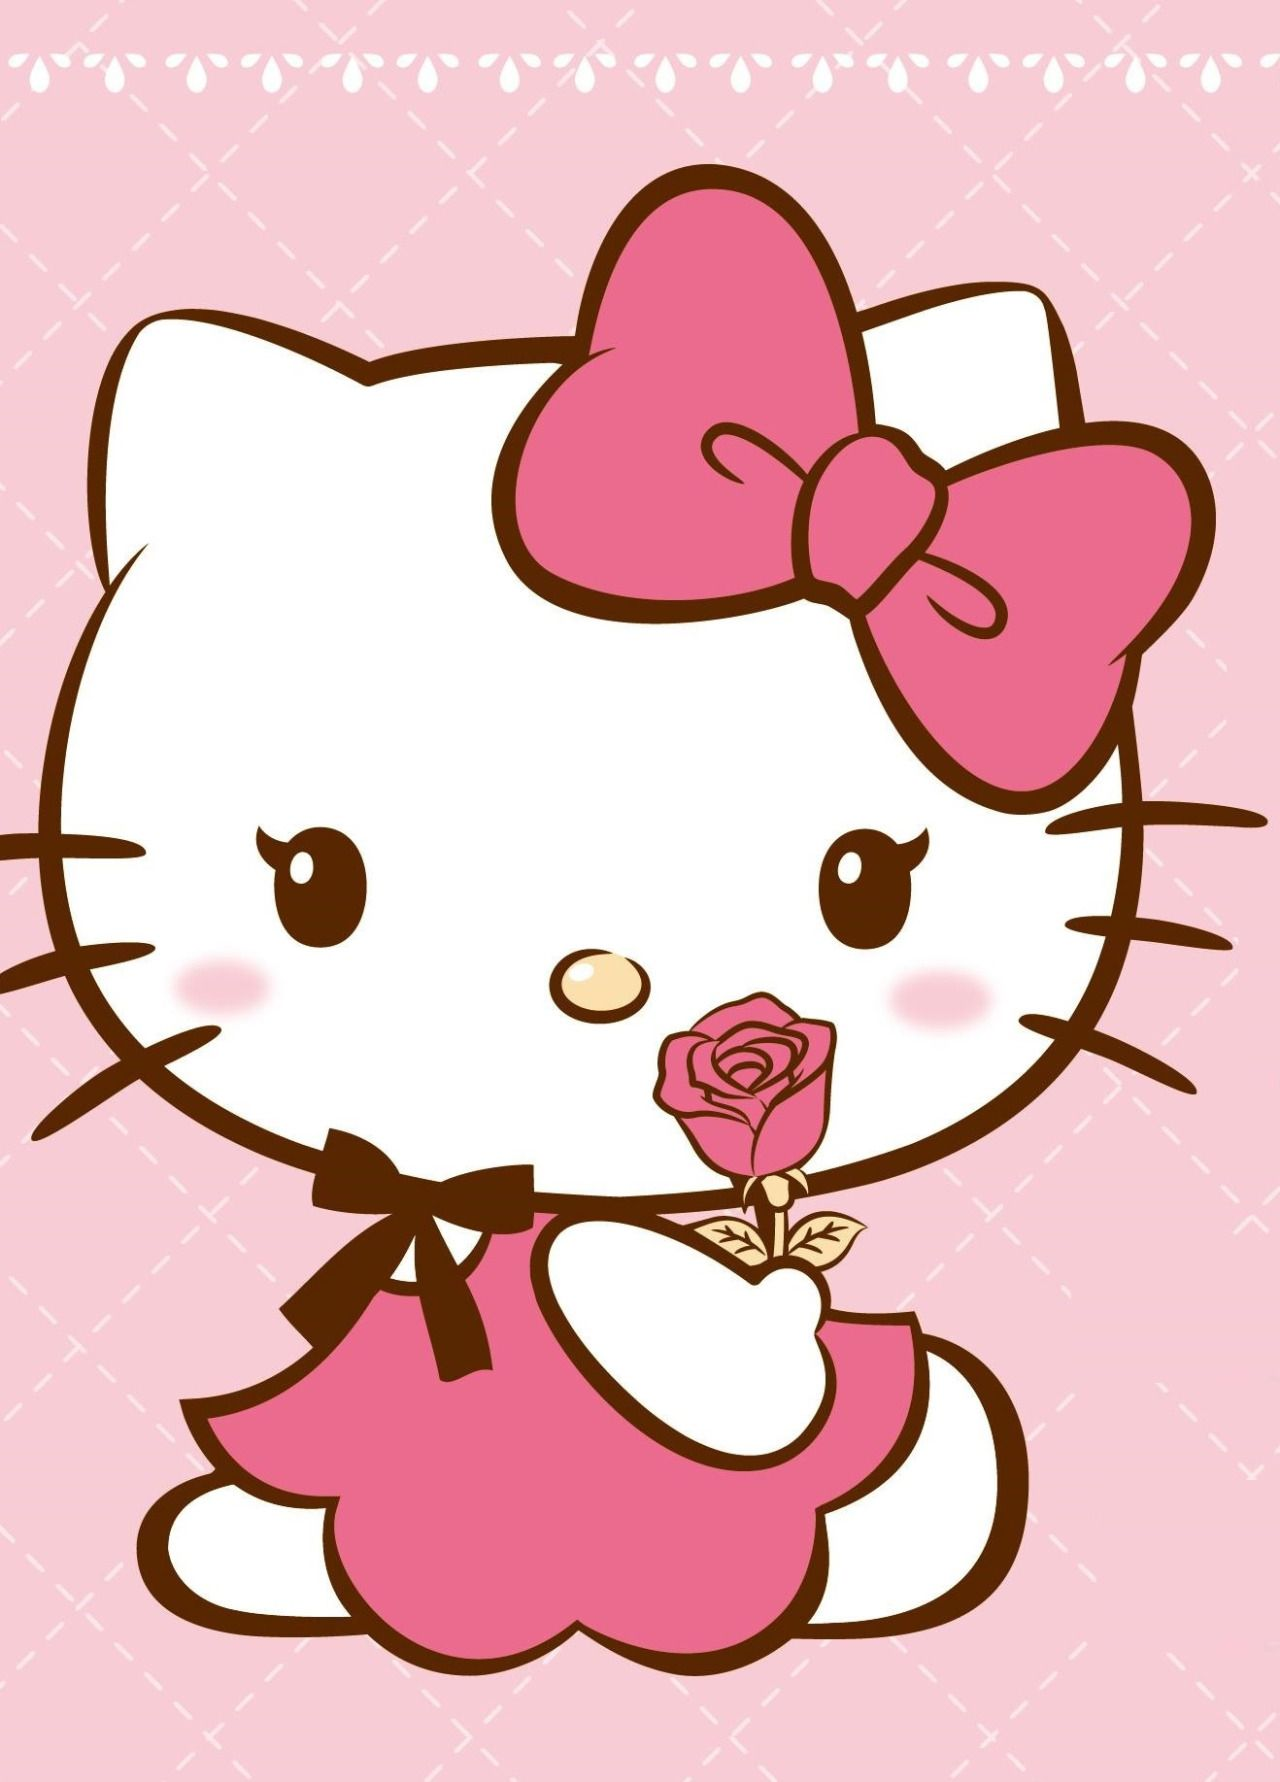 Retro Hello Kitty Wallpapers Top Free Retro Hello Kitty